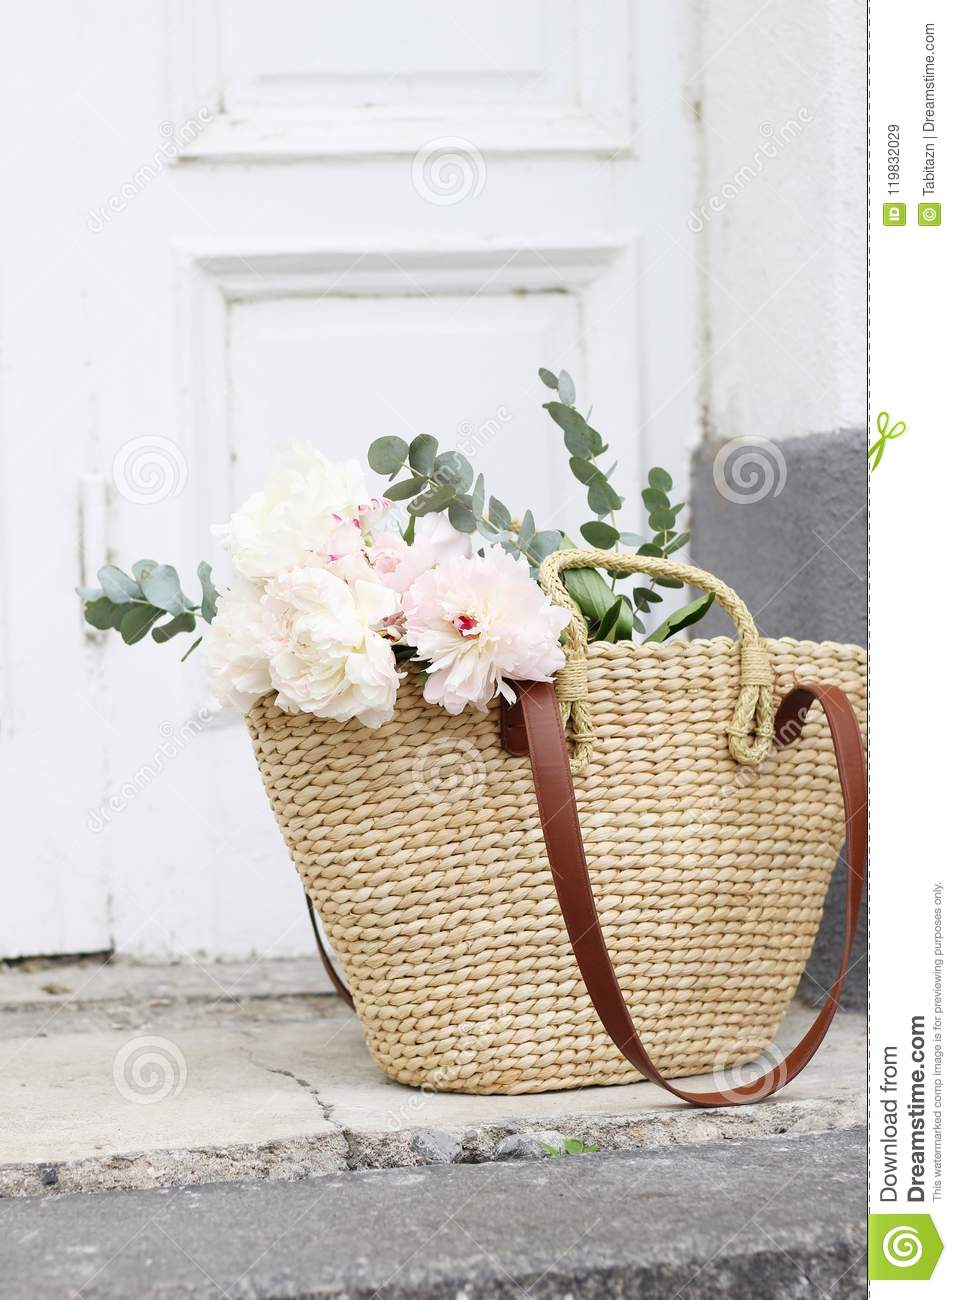 Styled stock photo. Feminine wedding still life composition with straw French basket bag with pink peonies flowers and